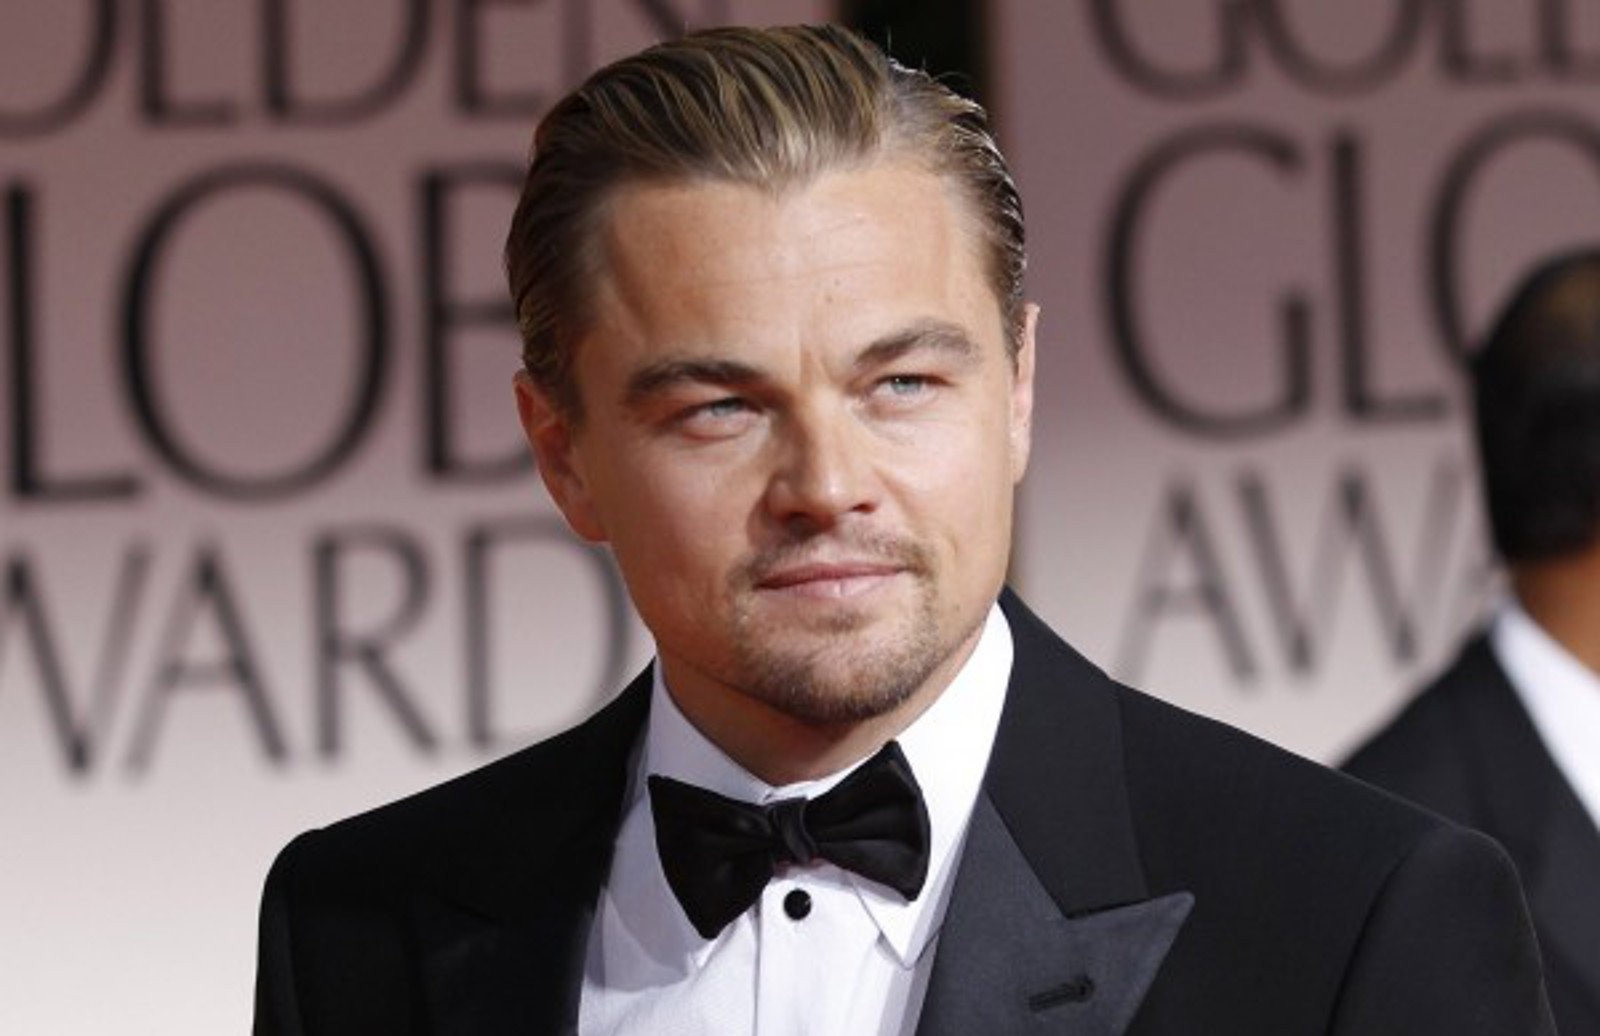 Leonardo DiCaprio Raises $25 Million For The Environment